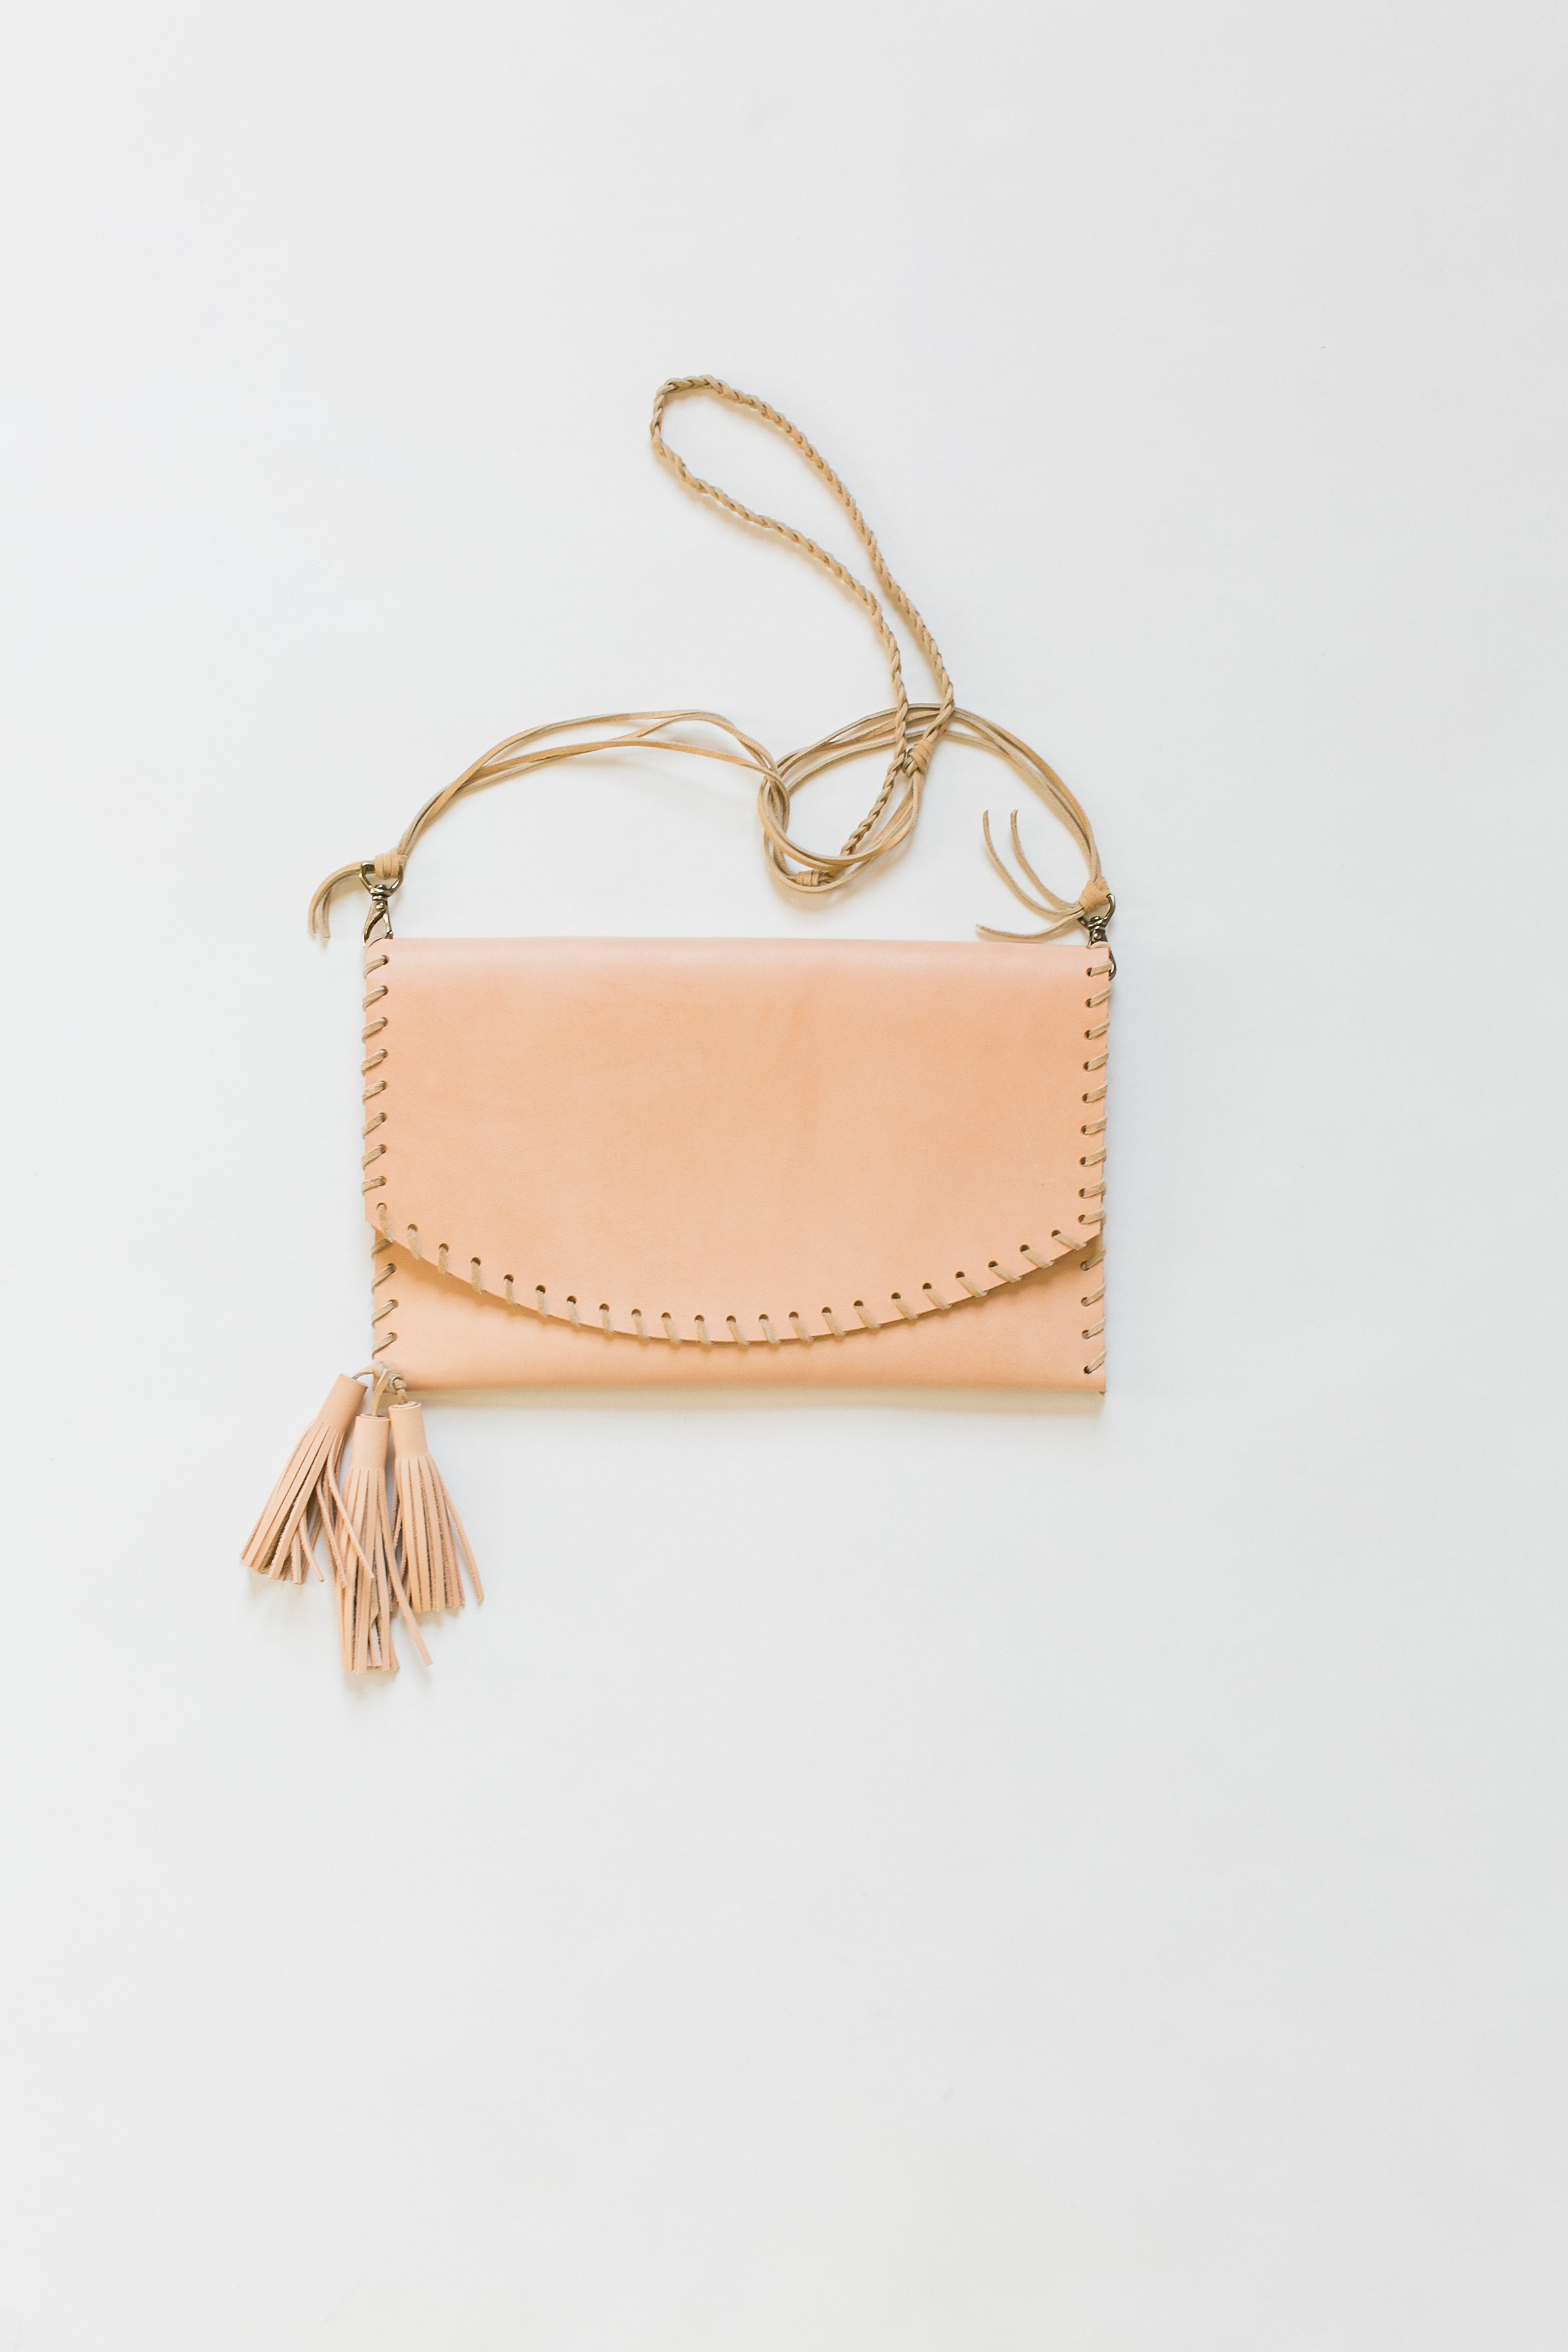 The Braided Detachable Strap